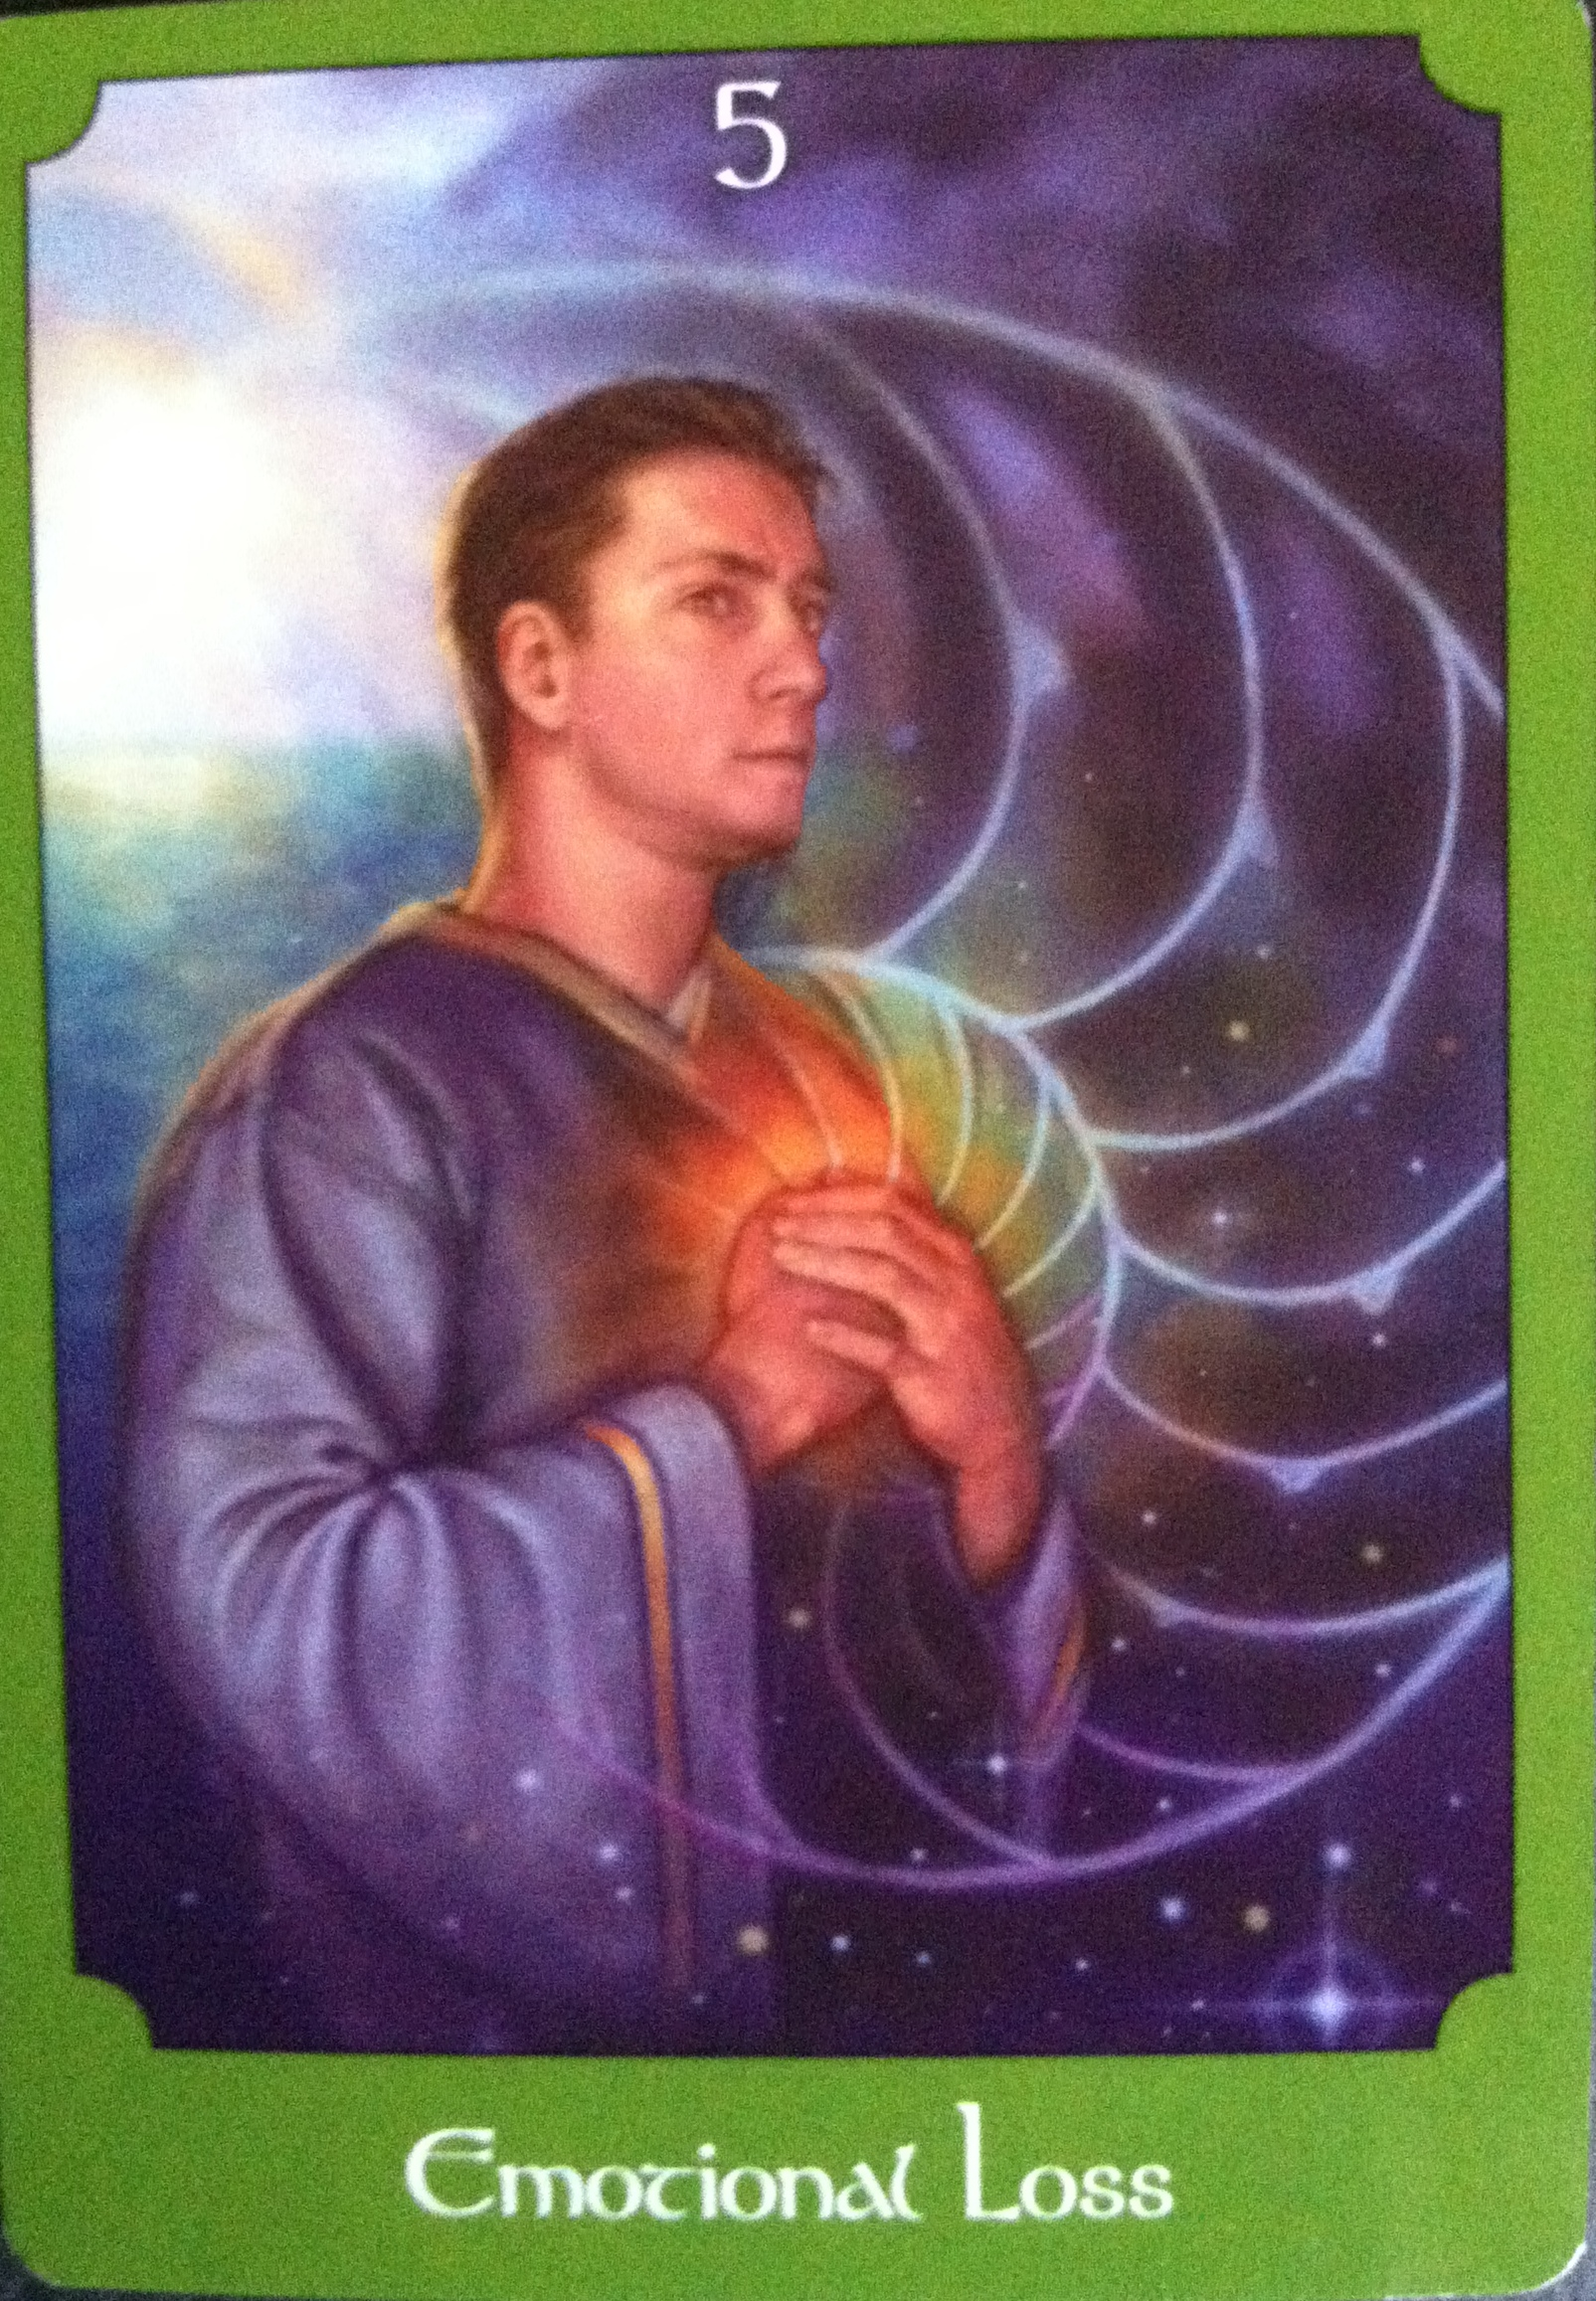 July 1-7 Card Reading: Release, Retreat, Accept